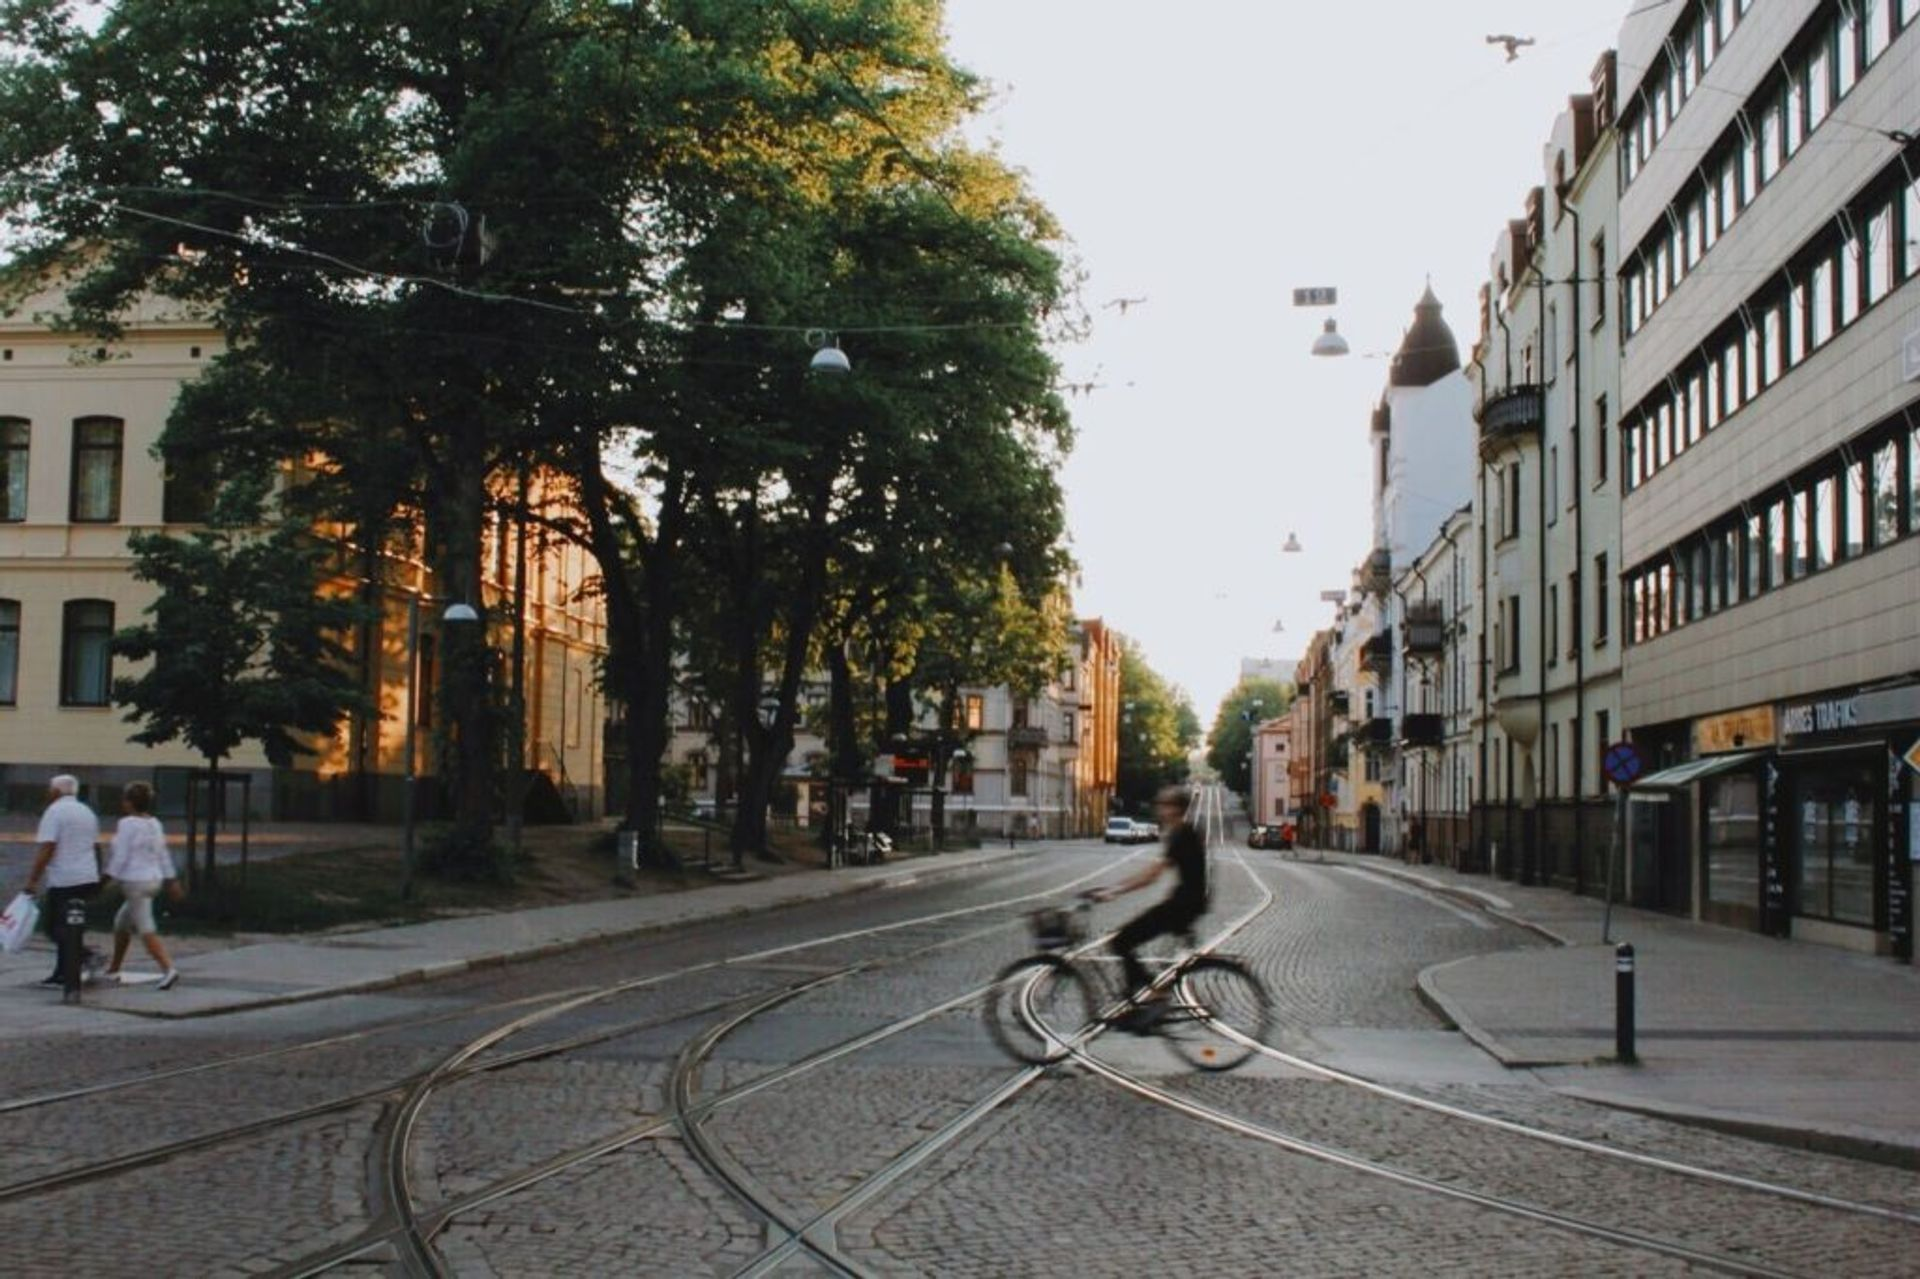 Person cycling across a cobbled street in Norrköping.